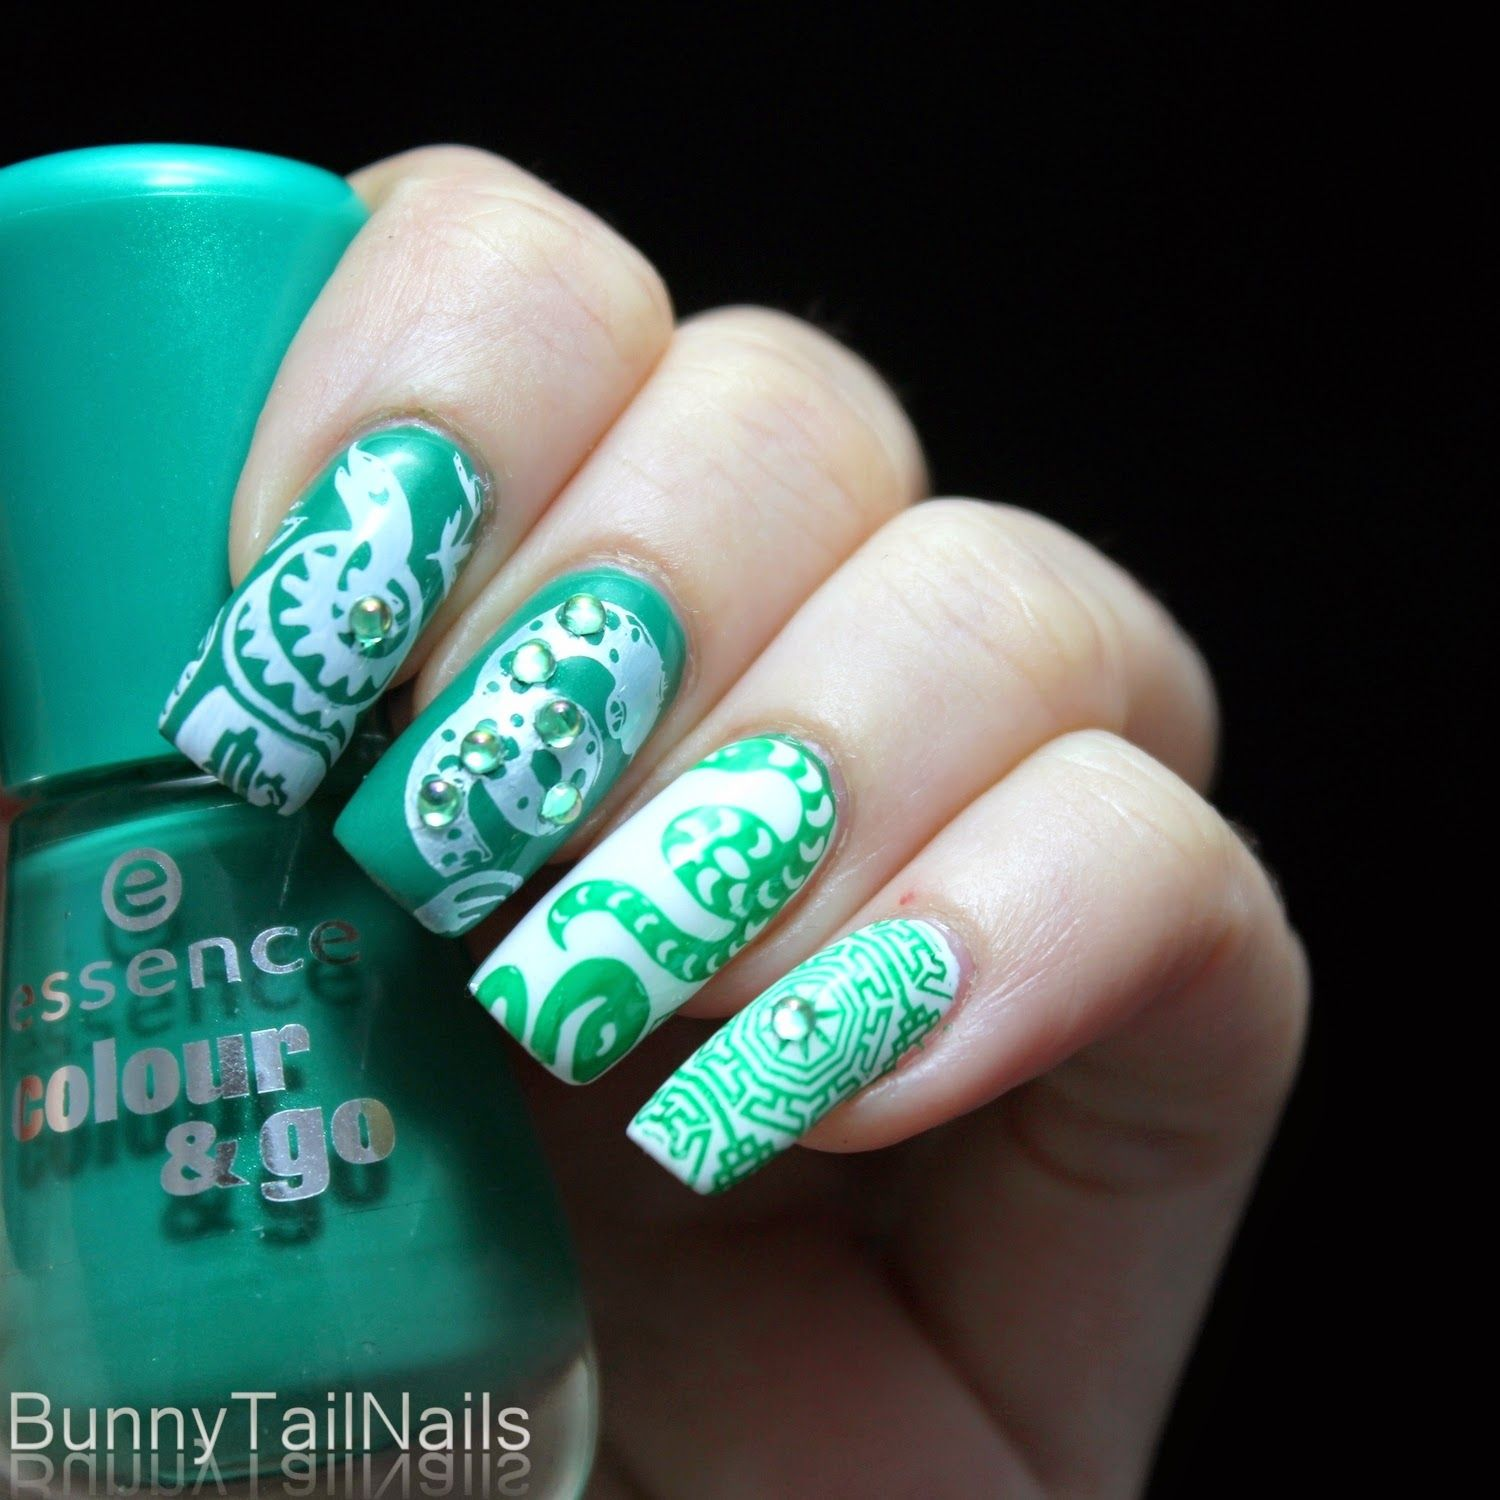 BunnyTailNails: Why Can't Every Year Be the Year of the Rabbit?